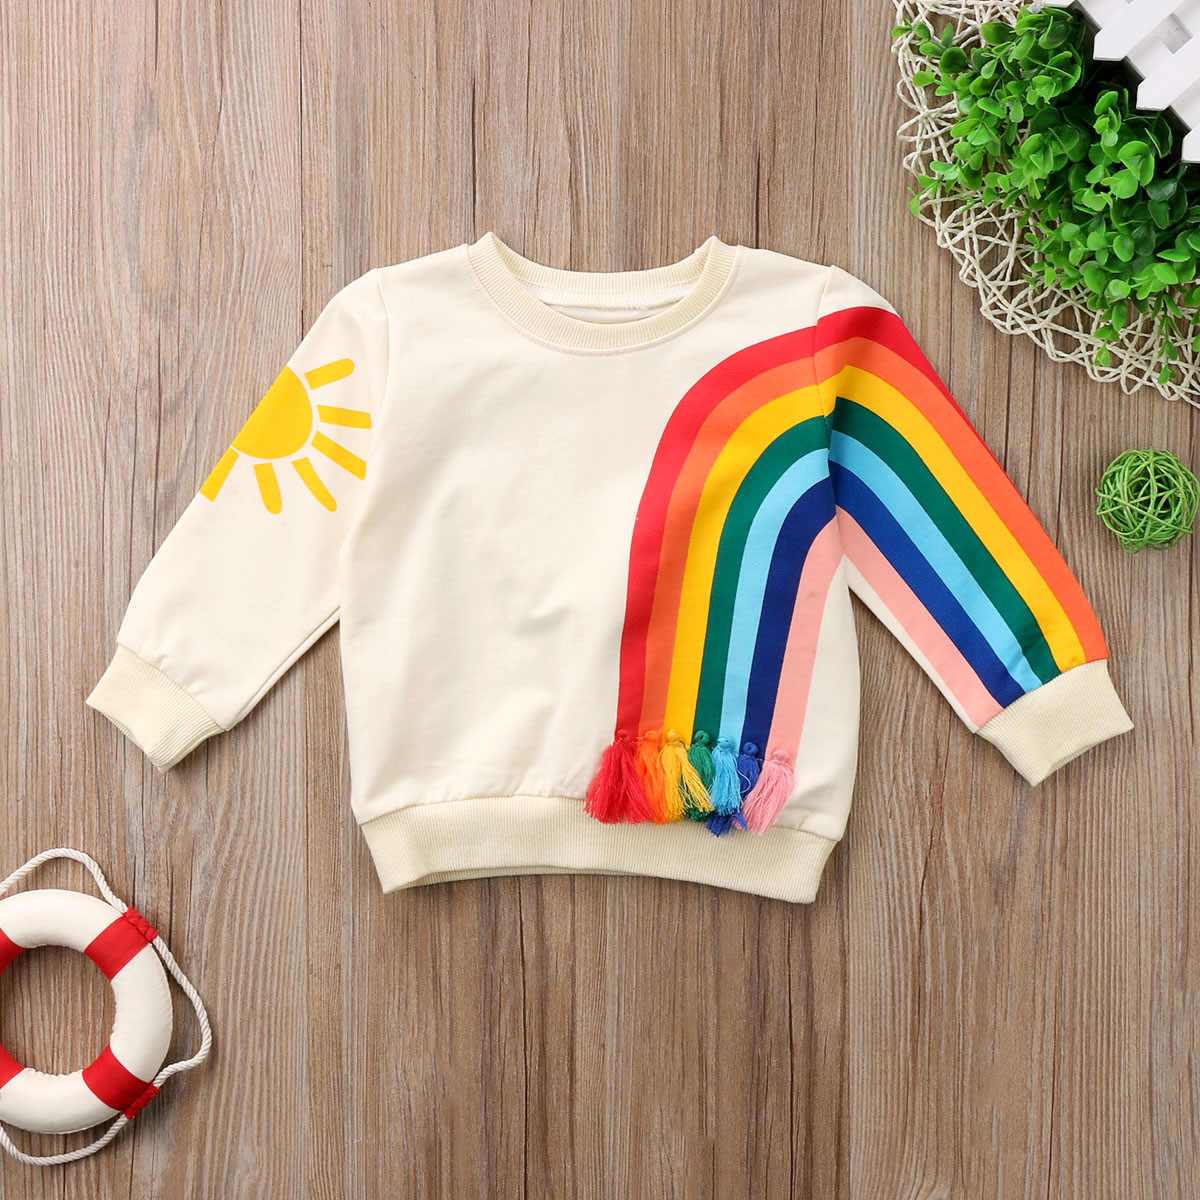 Baby Girls Kids Rainbow T-Shirt Clothes Blouse Sweater Sweatshirt Cardigan Long Sleeve Cotton Clothes